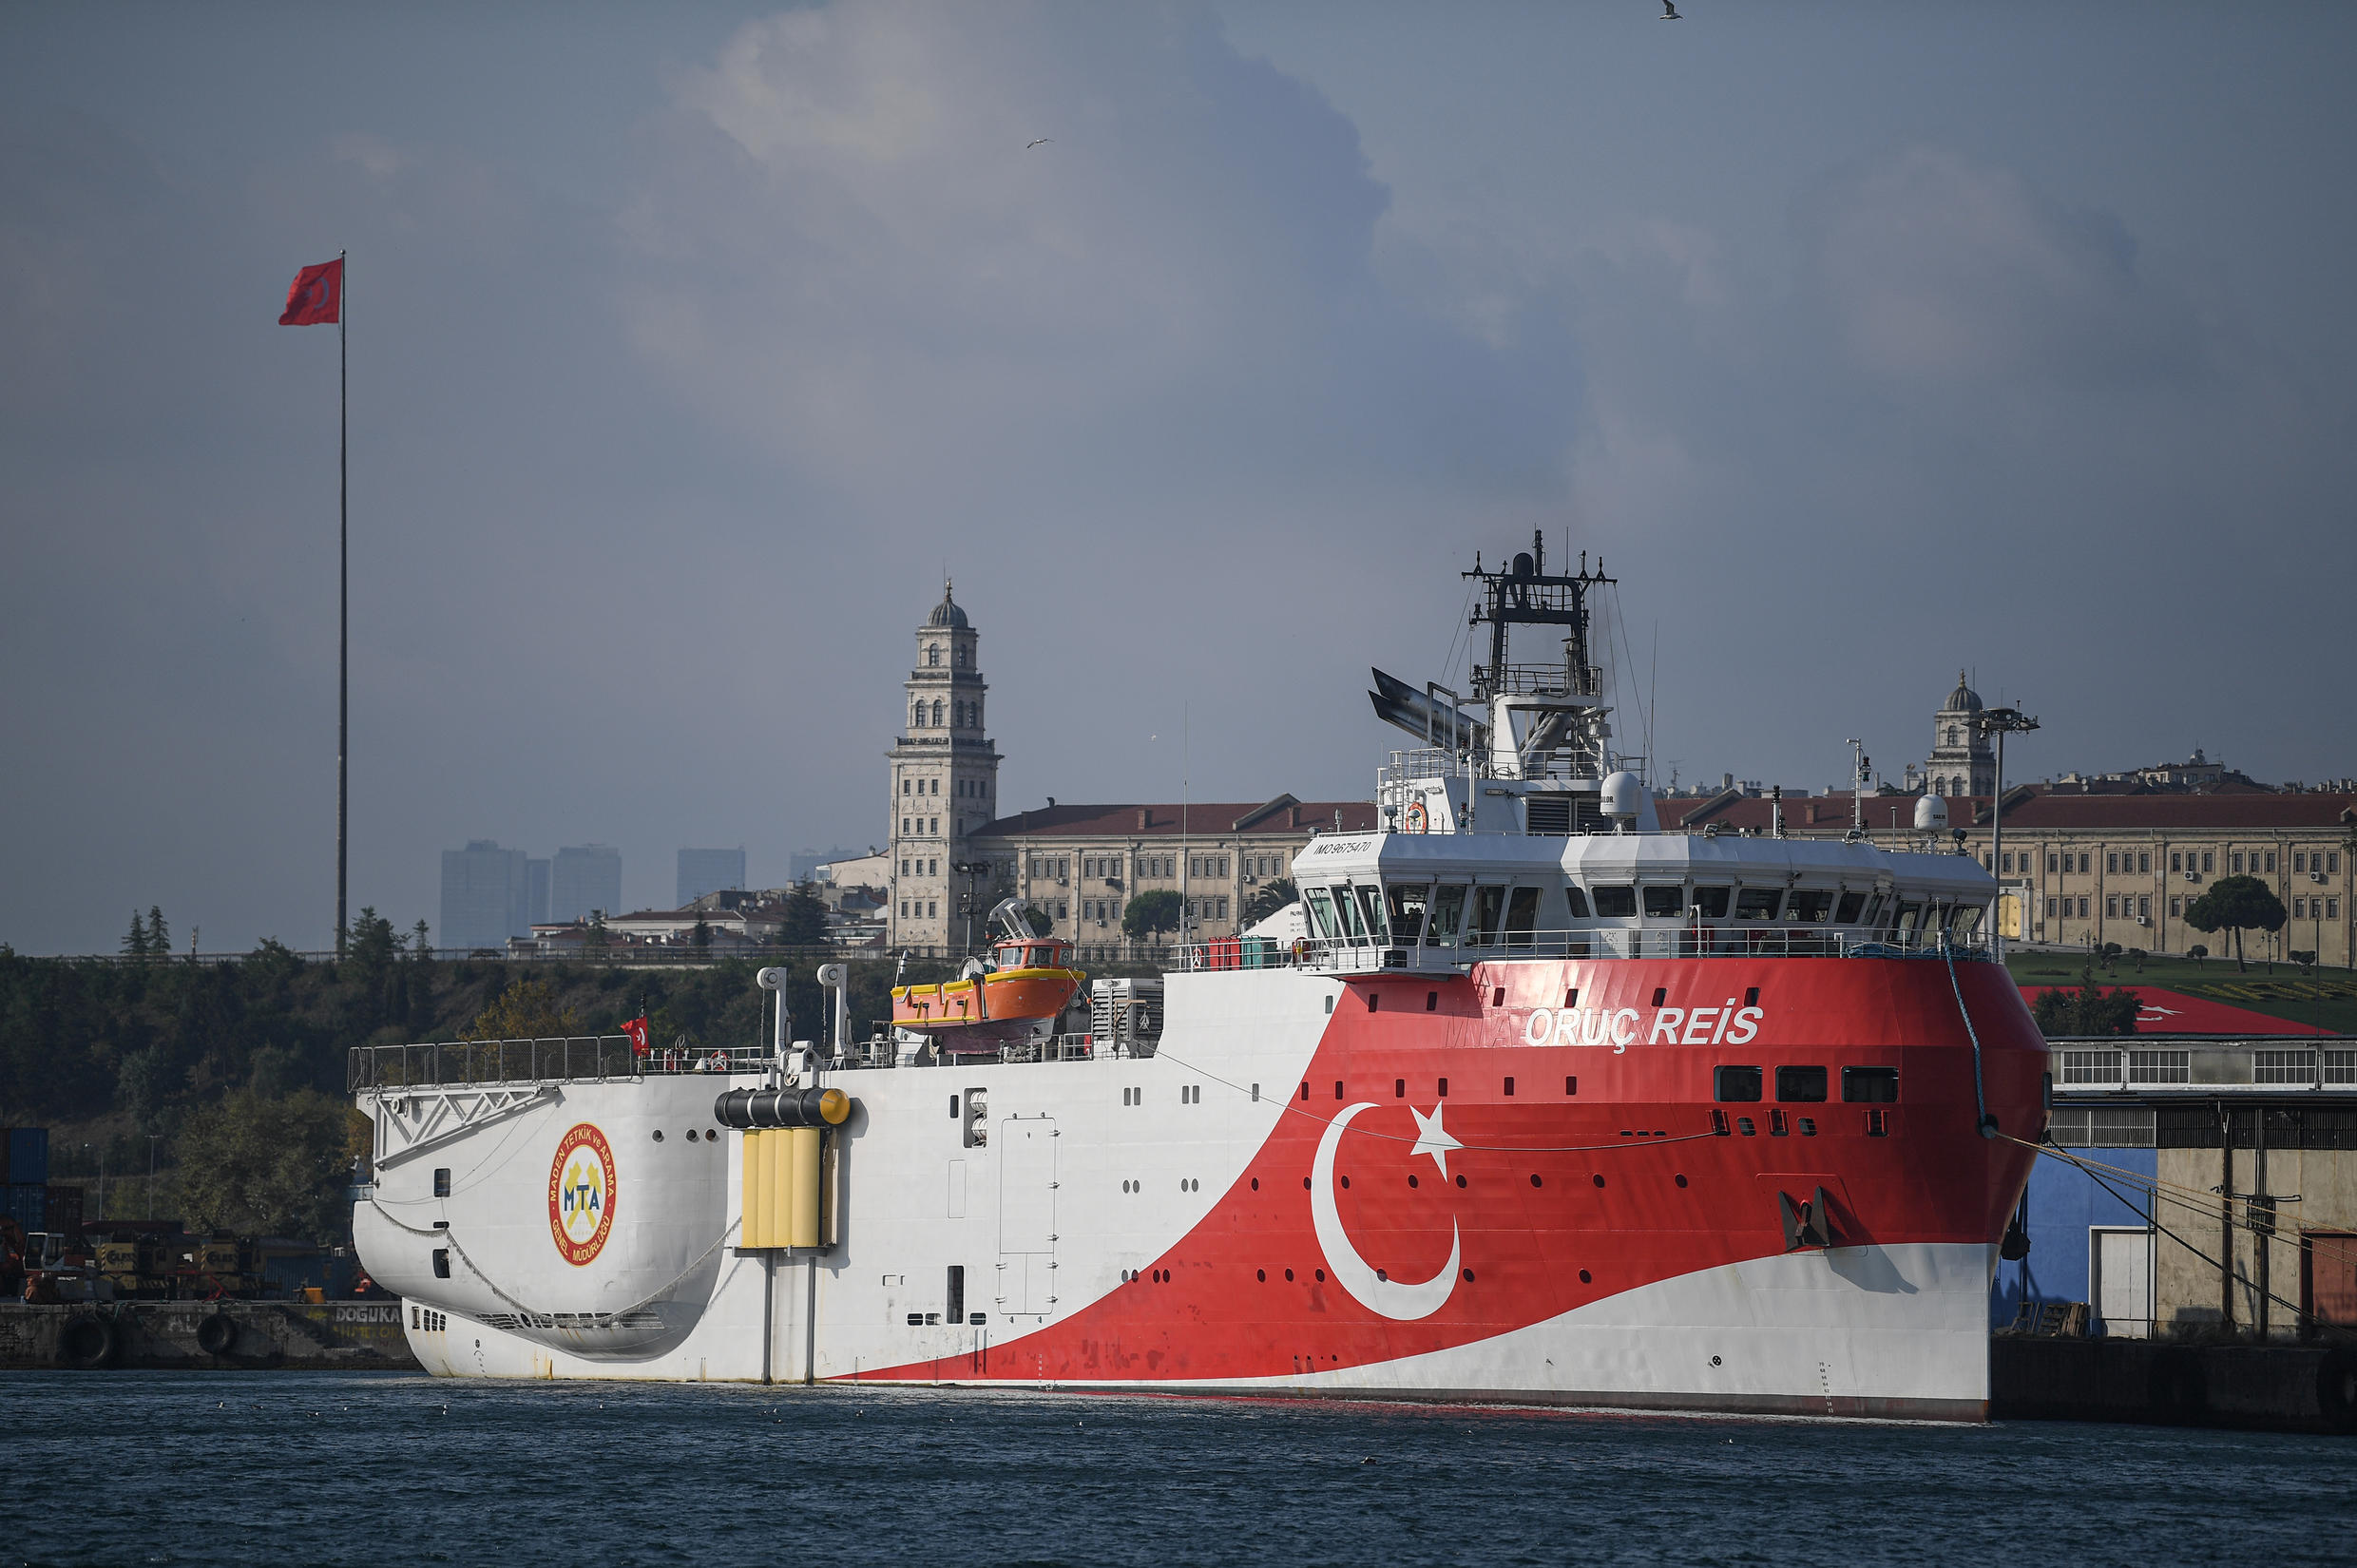 Turkey deployed the Oruc Reis research vessel and warships to the disputed waters on August 10 and prolonged the mission twice